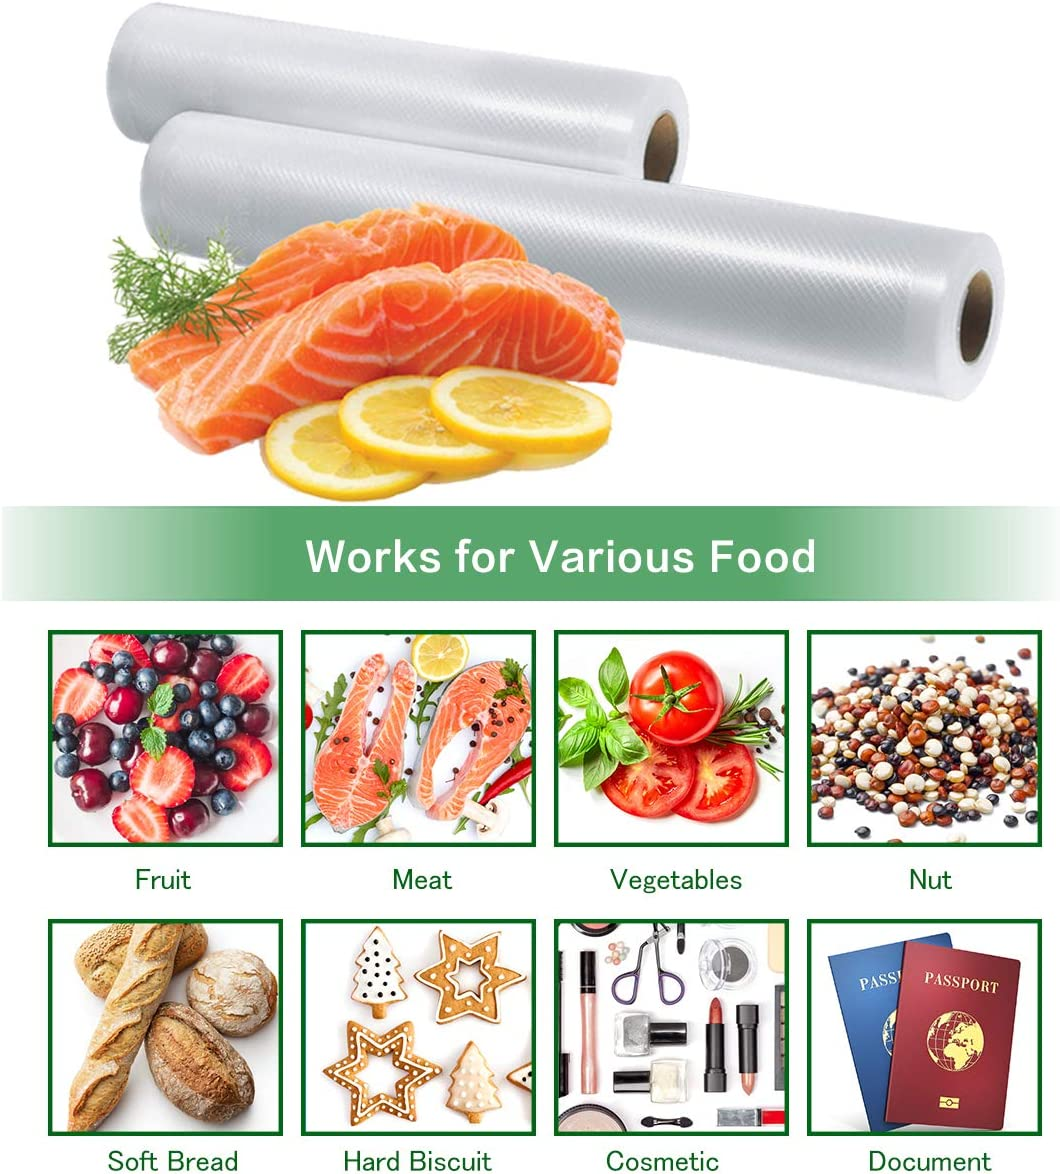 Vacuum Sealer Bags 2 Rolls 8x16.5 and 11x16.5 Vacuum Sealer Rolls for Foodsaver and Sous Vide,Commercial Quality Textured Microwave /& Freezer Safe,Food Saver Bags Rolls